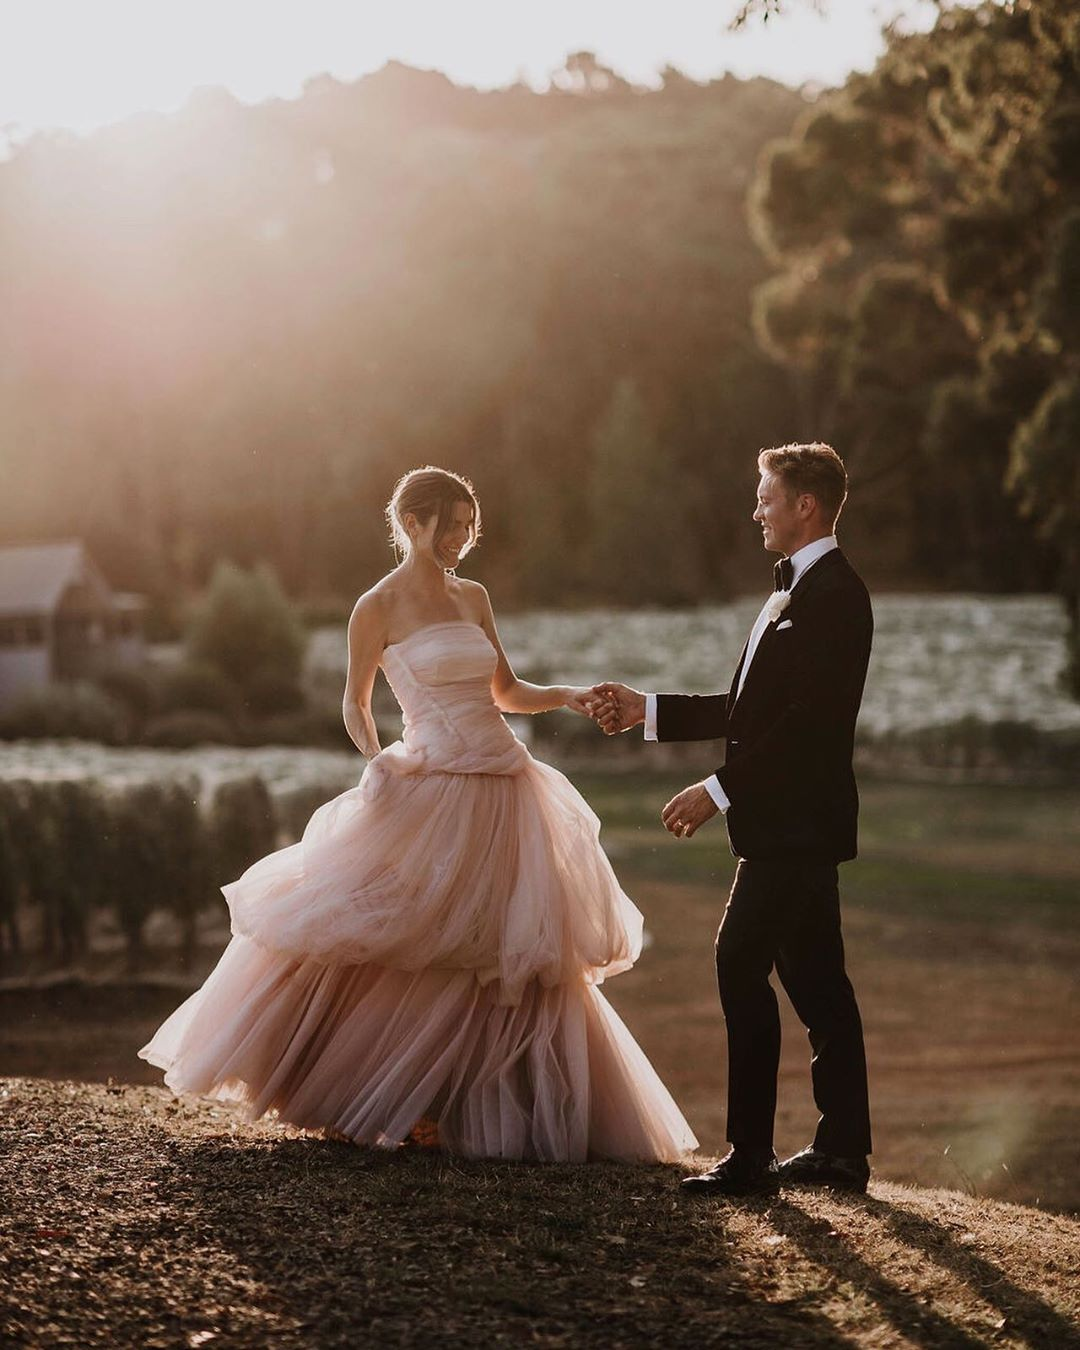 Wedding Inspiration | The best places for wedding inspiration